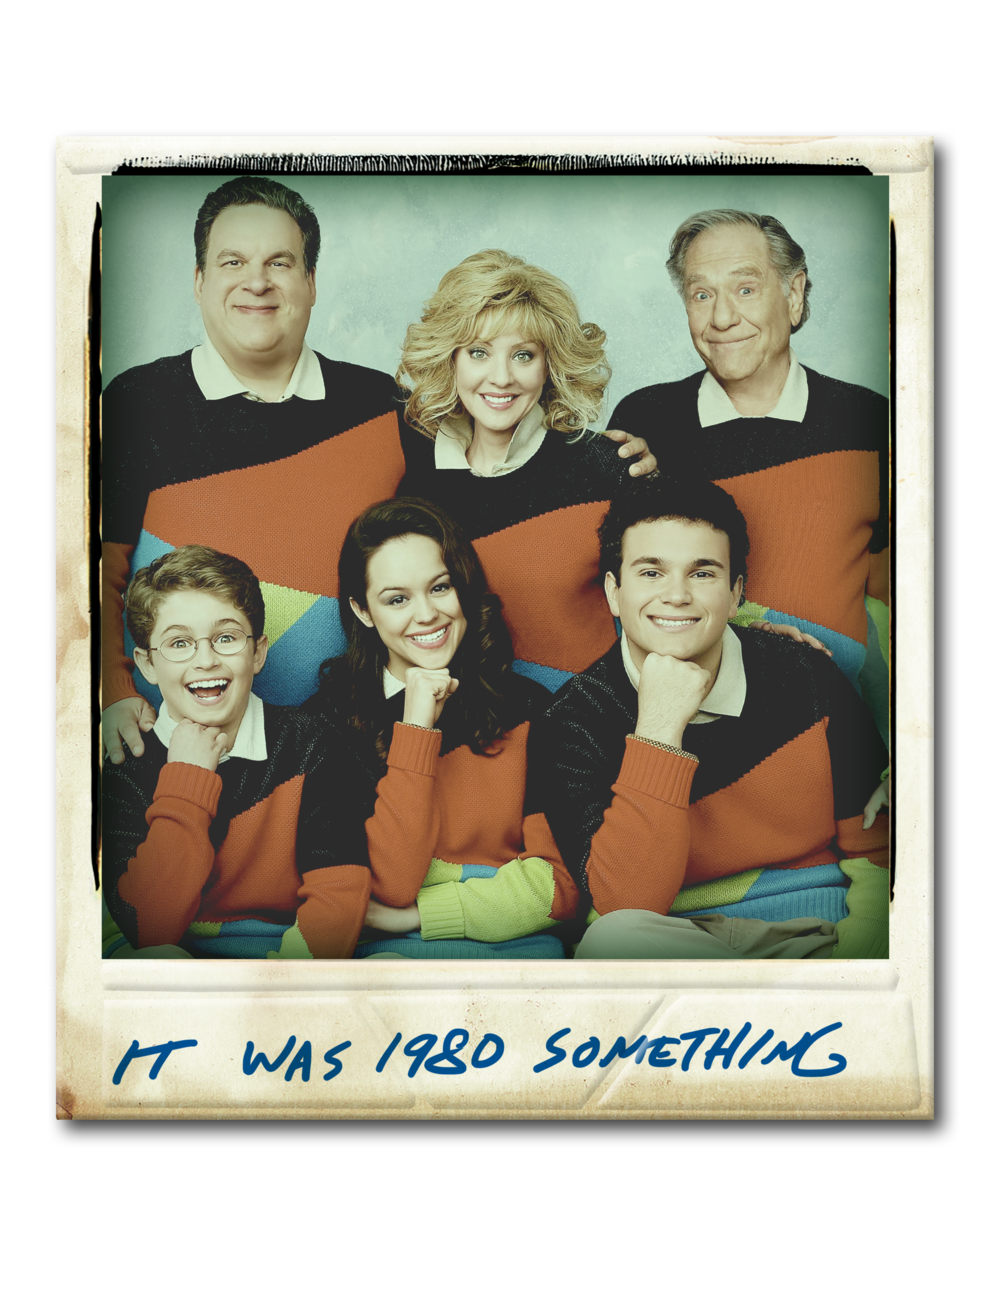 MM_Goldbergs_Awkward_Portrait_1_R1.png